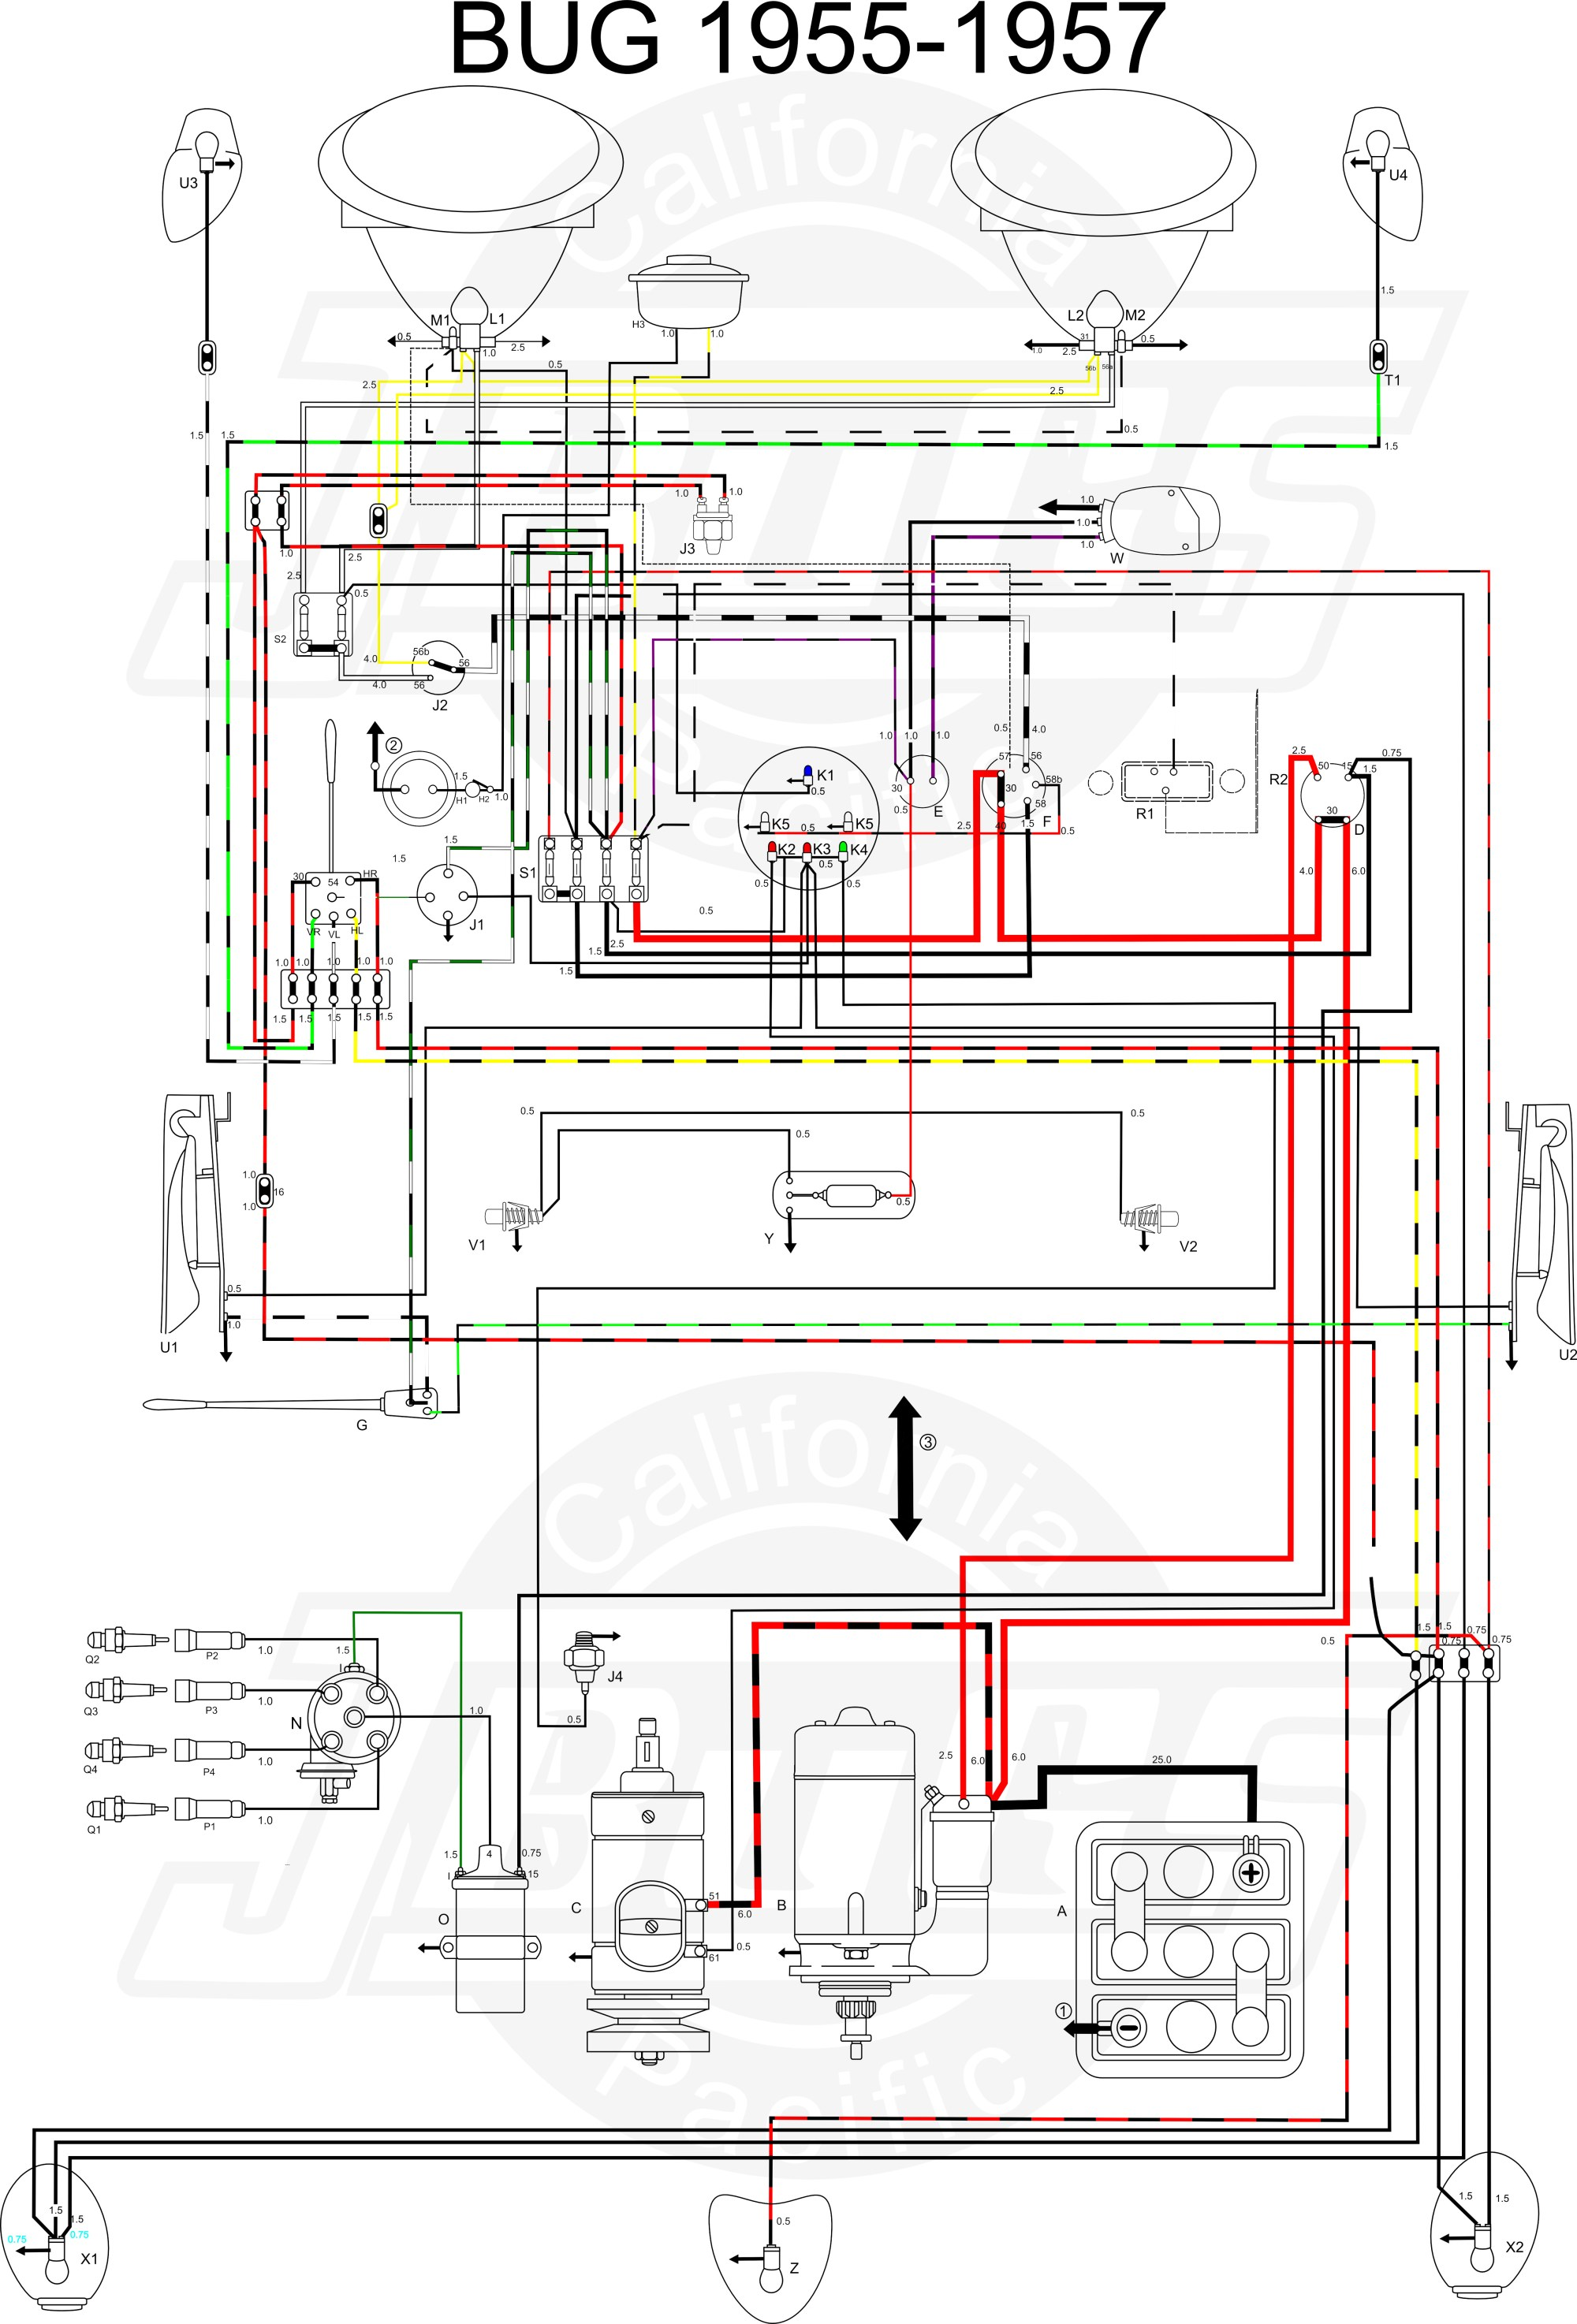 hight resolution of compleat wiring diagram beetle wiring diagram img 1949 vw wiring diagram